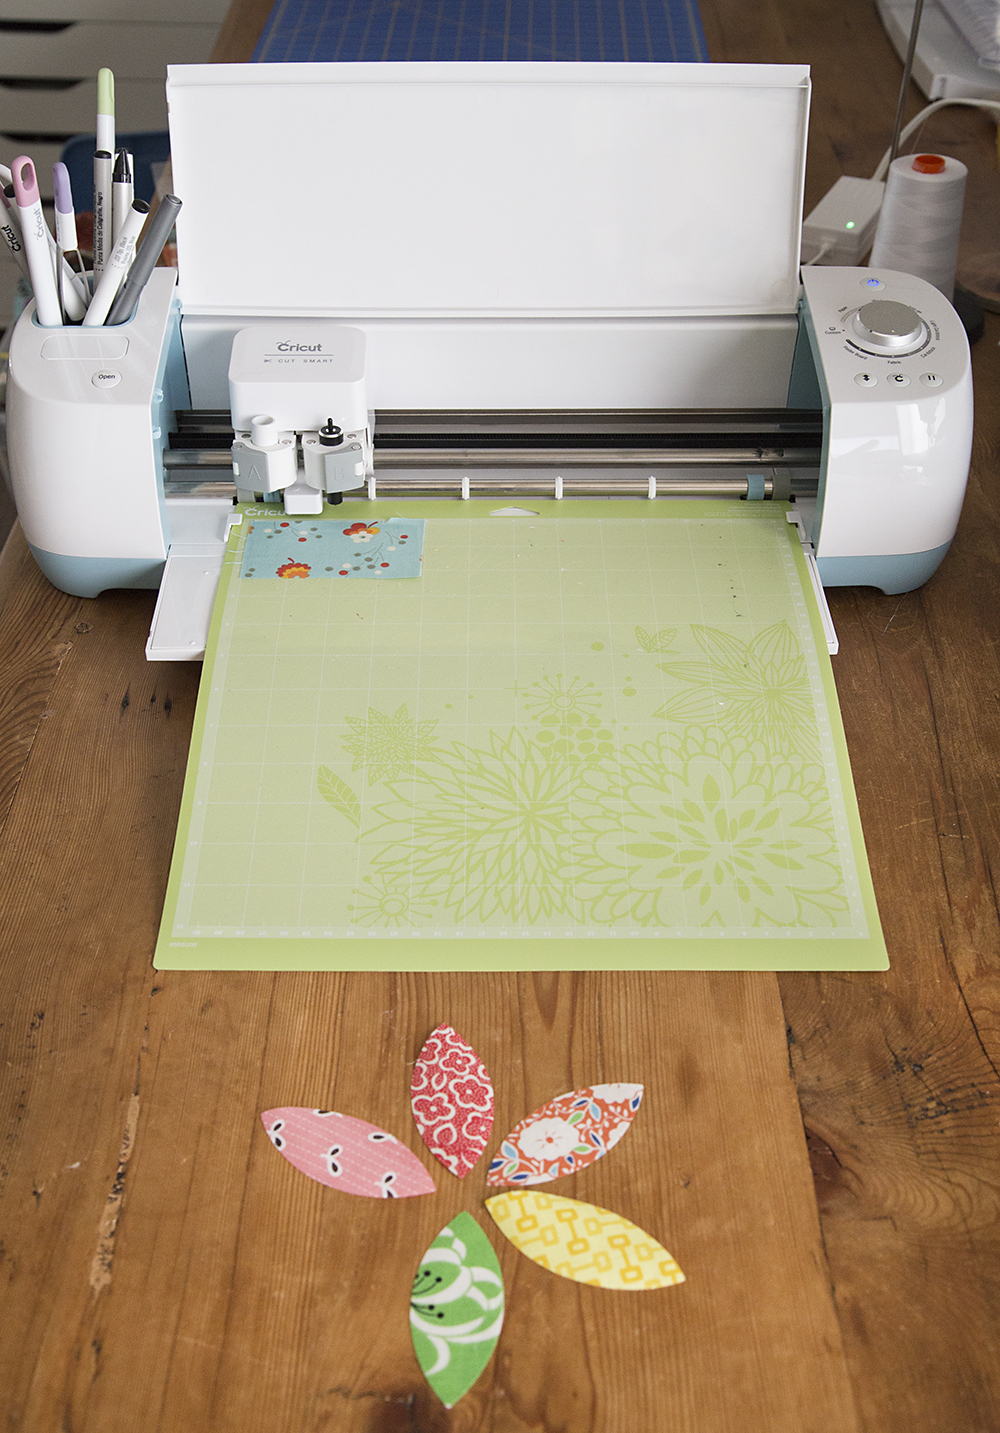 Cutting Fabric using a Cricut Explore Air